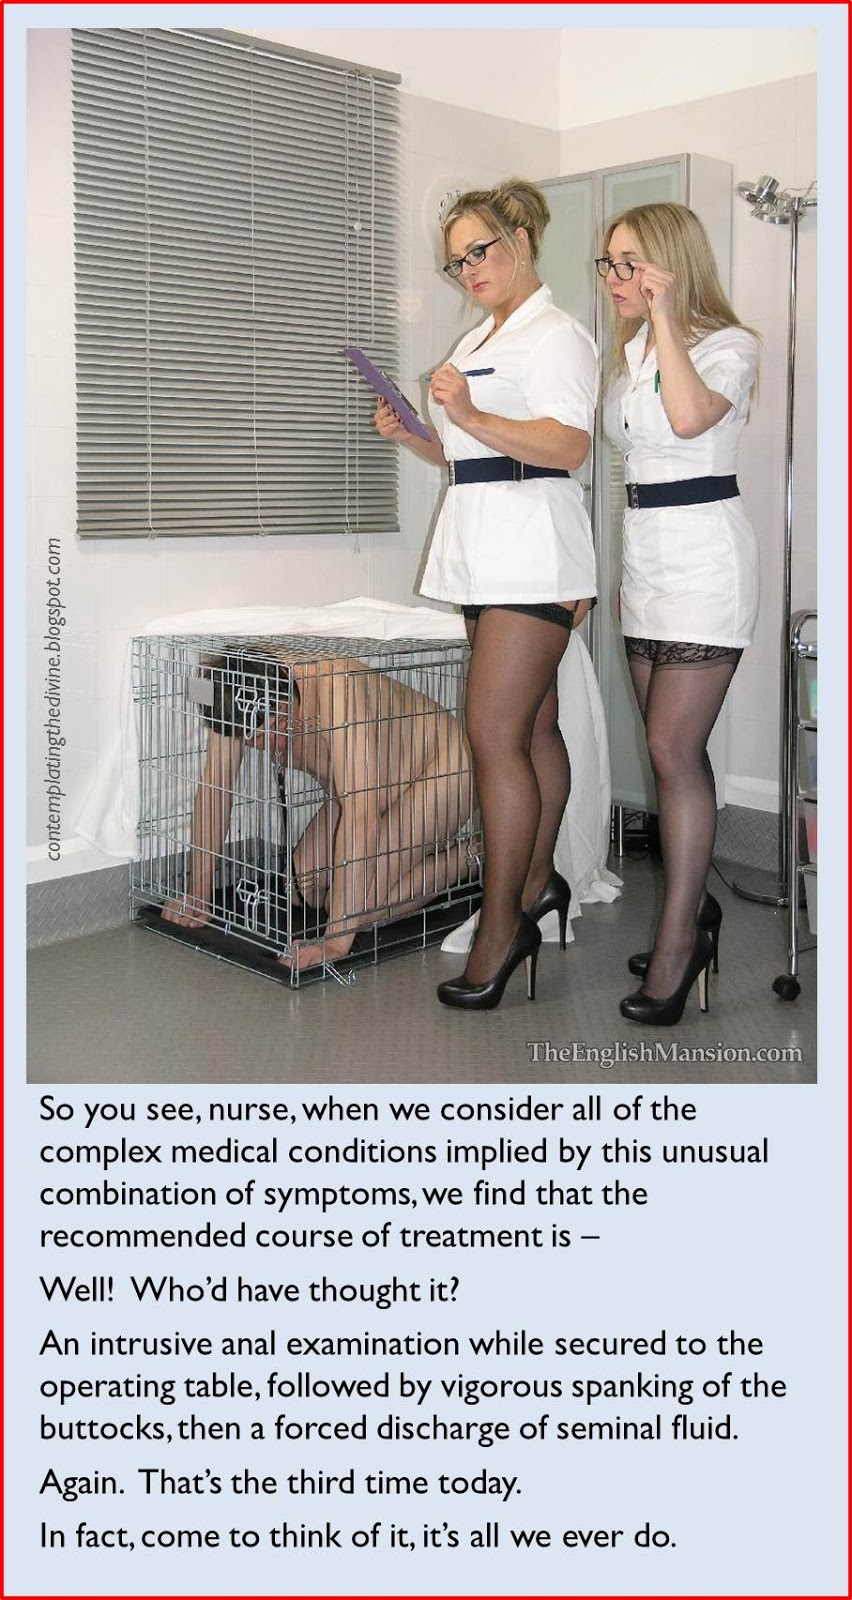 The usual treatment by femdom nurses